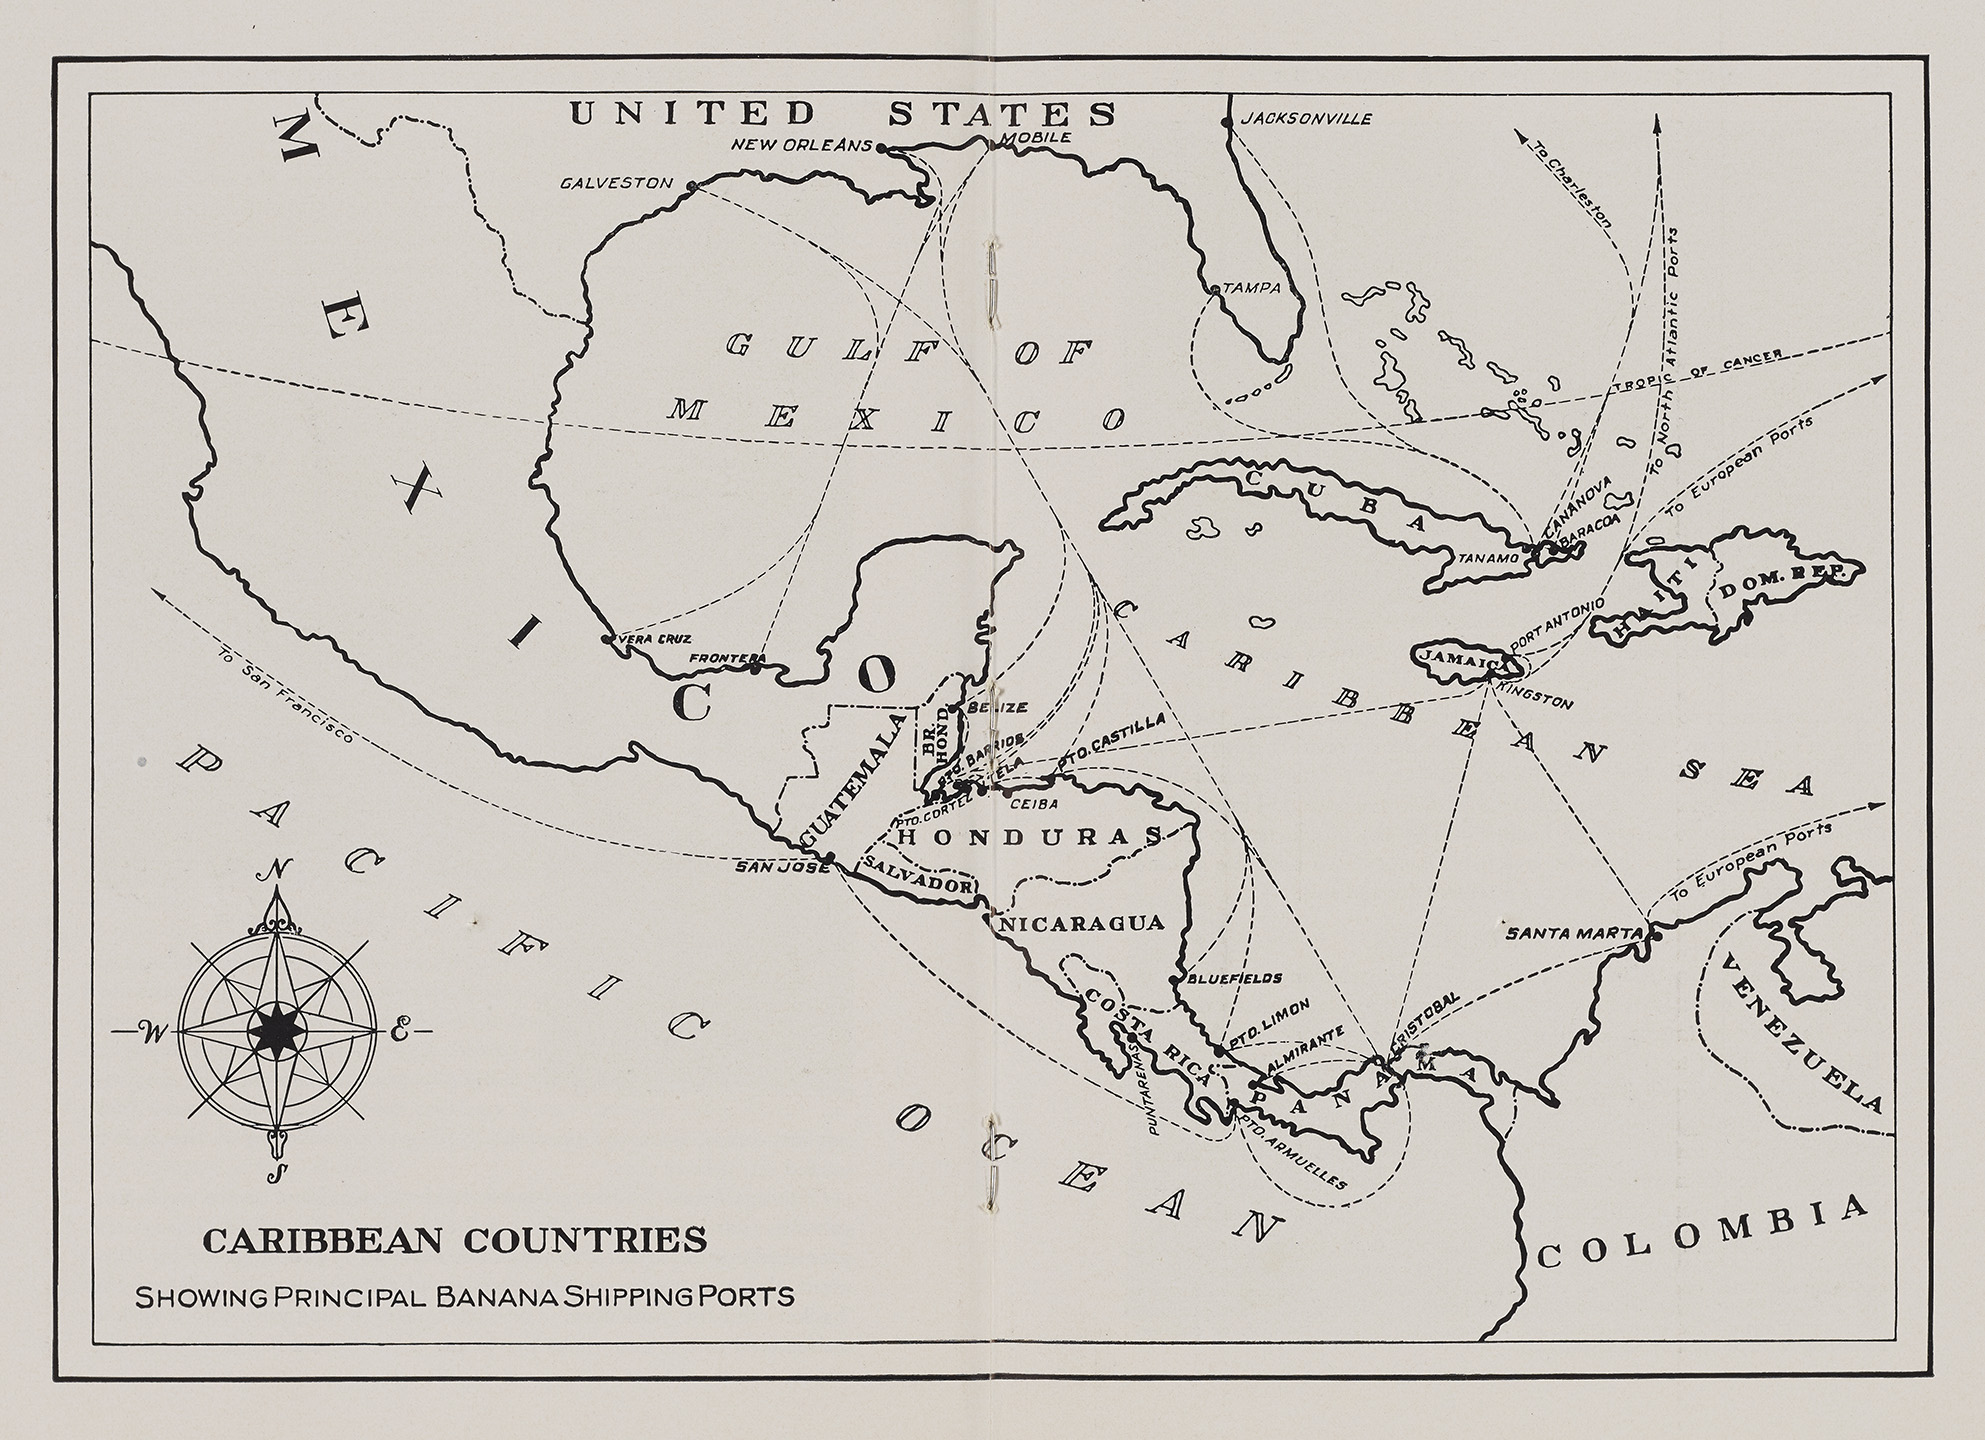 Map of banana trade routes, ca. 1940. WPA Federal Writers' Project collection, NYC Municipal Archives.